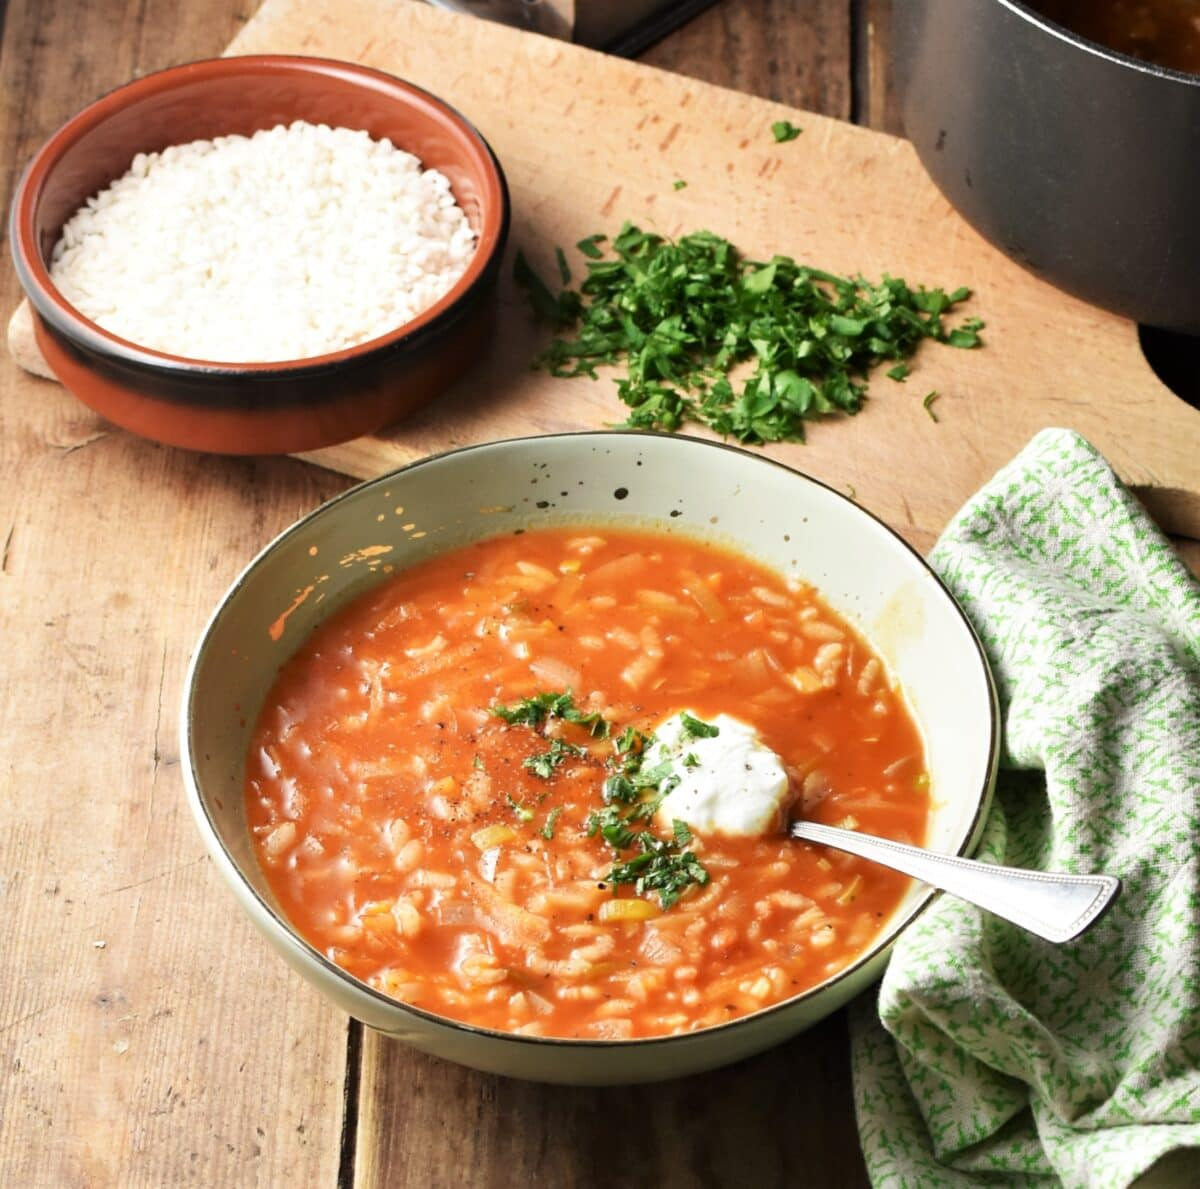 Chunky rice tomato soup with yogurt and herbs in green bowl with spoon, green cloth to the right, rice in brown dish and chopped herbs on wooden board in background.